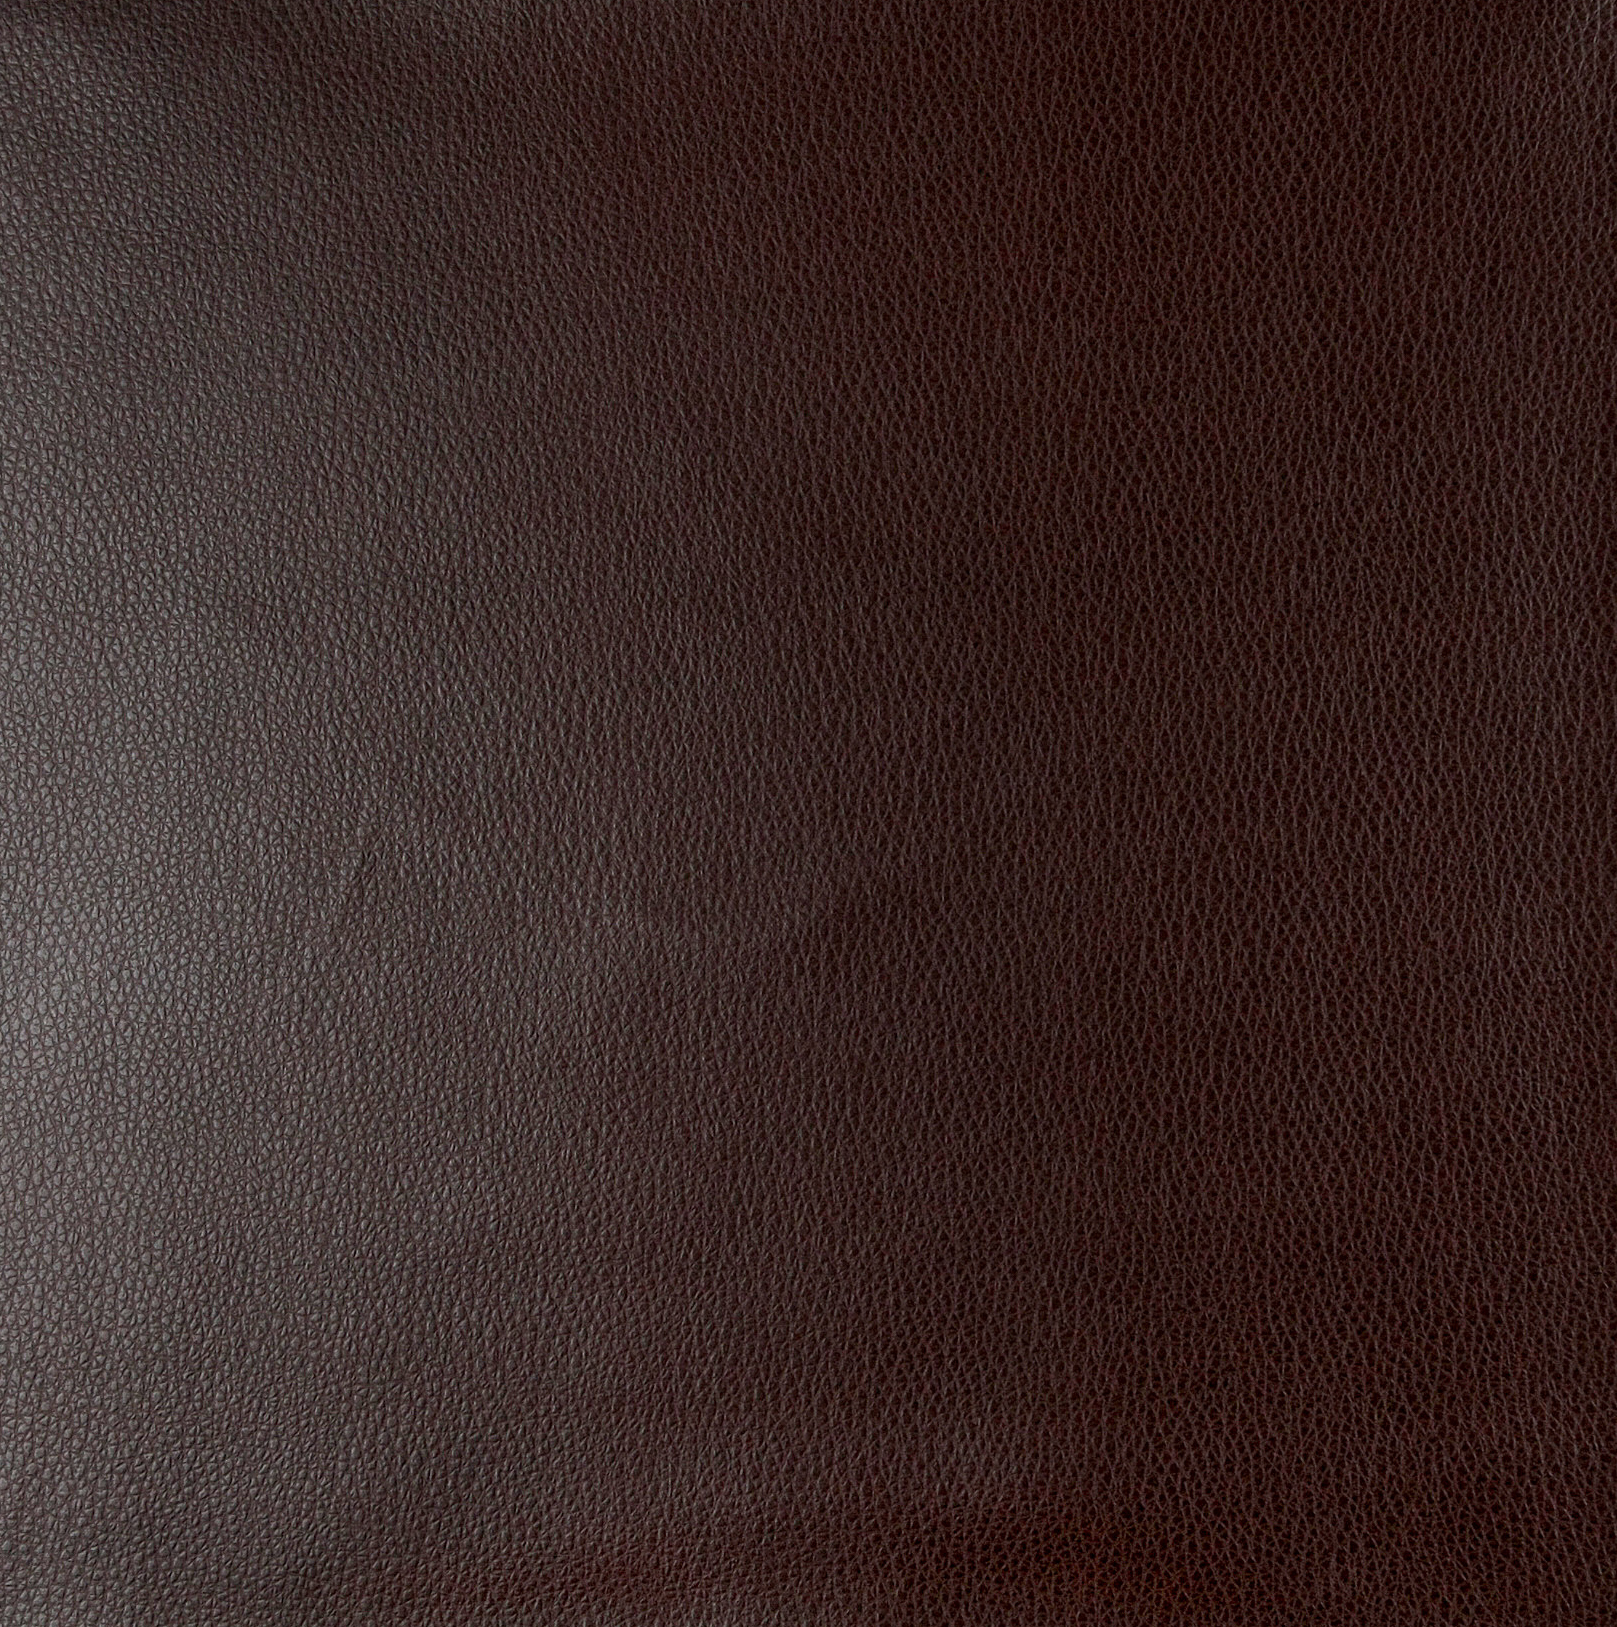 Chestnut Burgundy Brown Light Leather Texture Vinyl